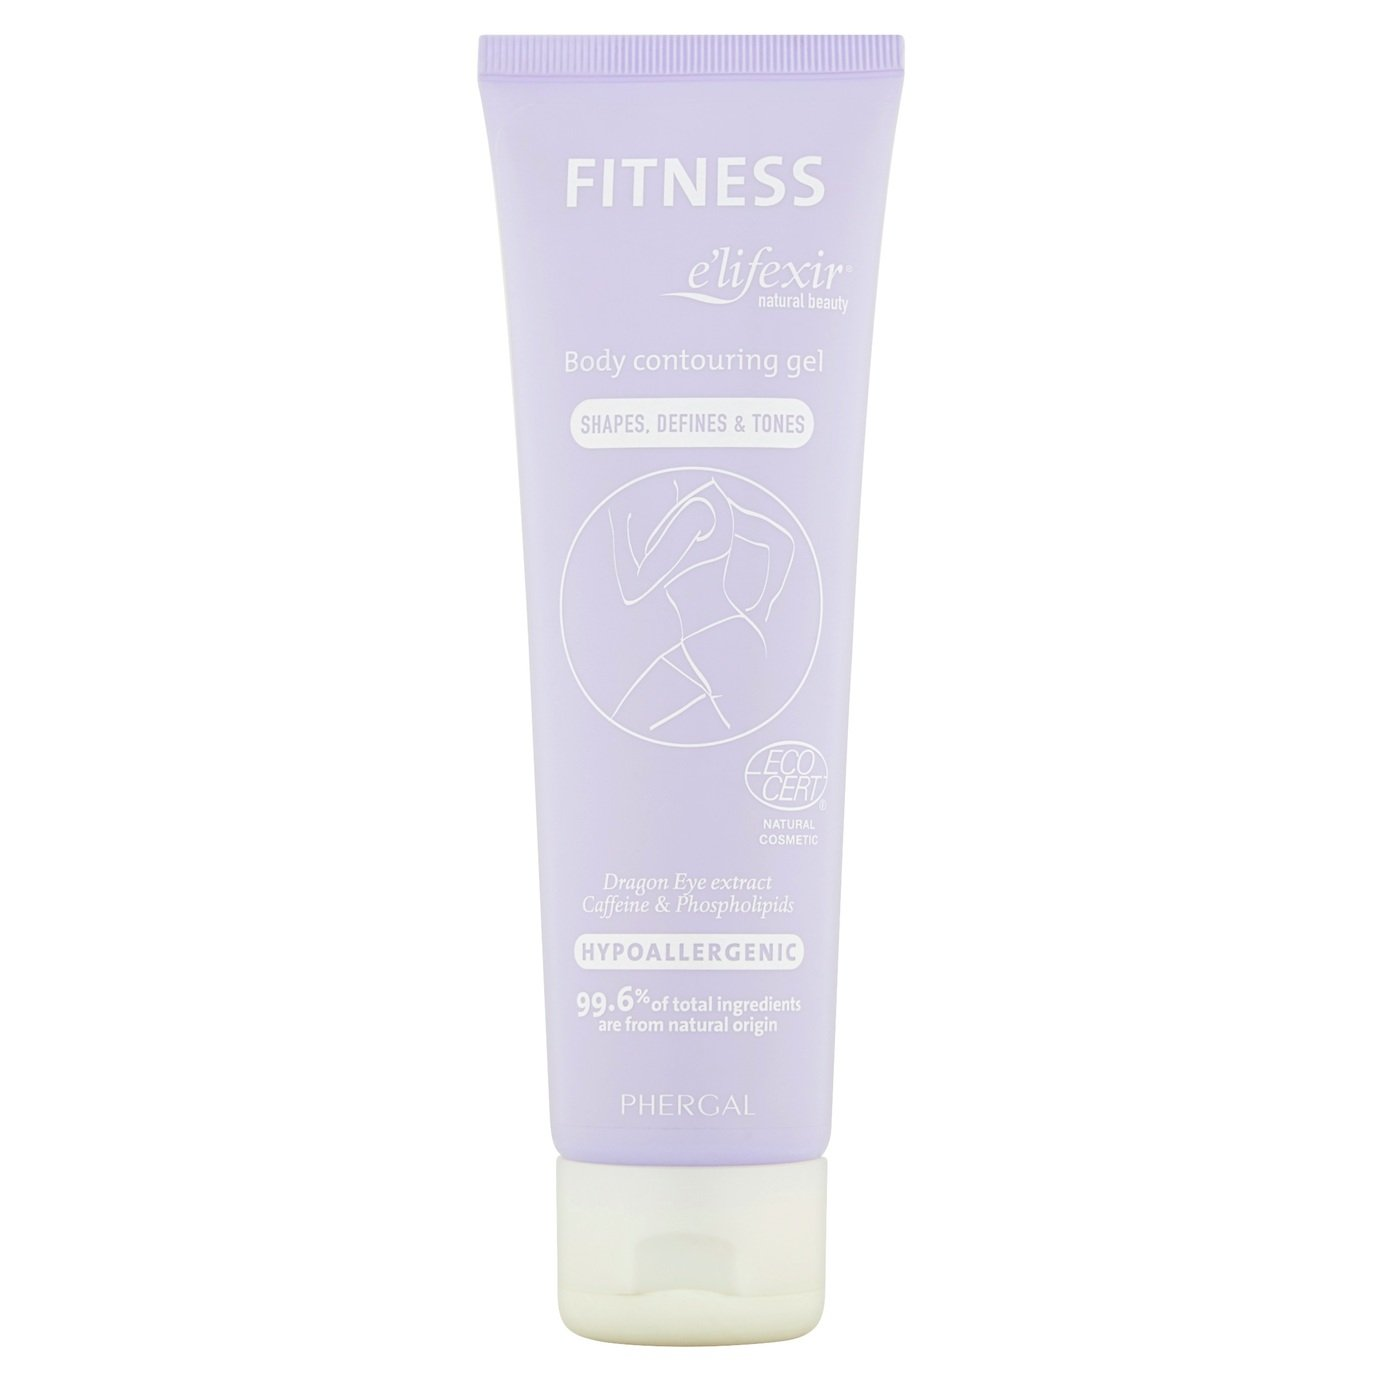 E'lifexir Natural Beauty Fitness Body Contouring Gel 150ml